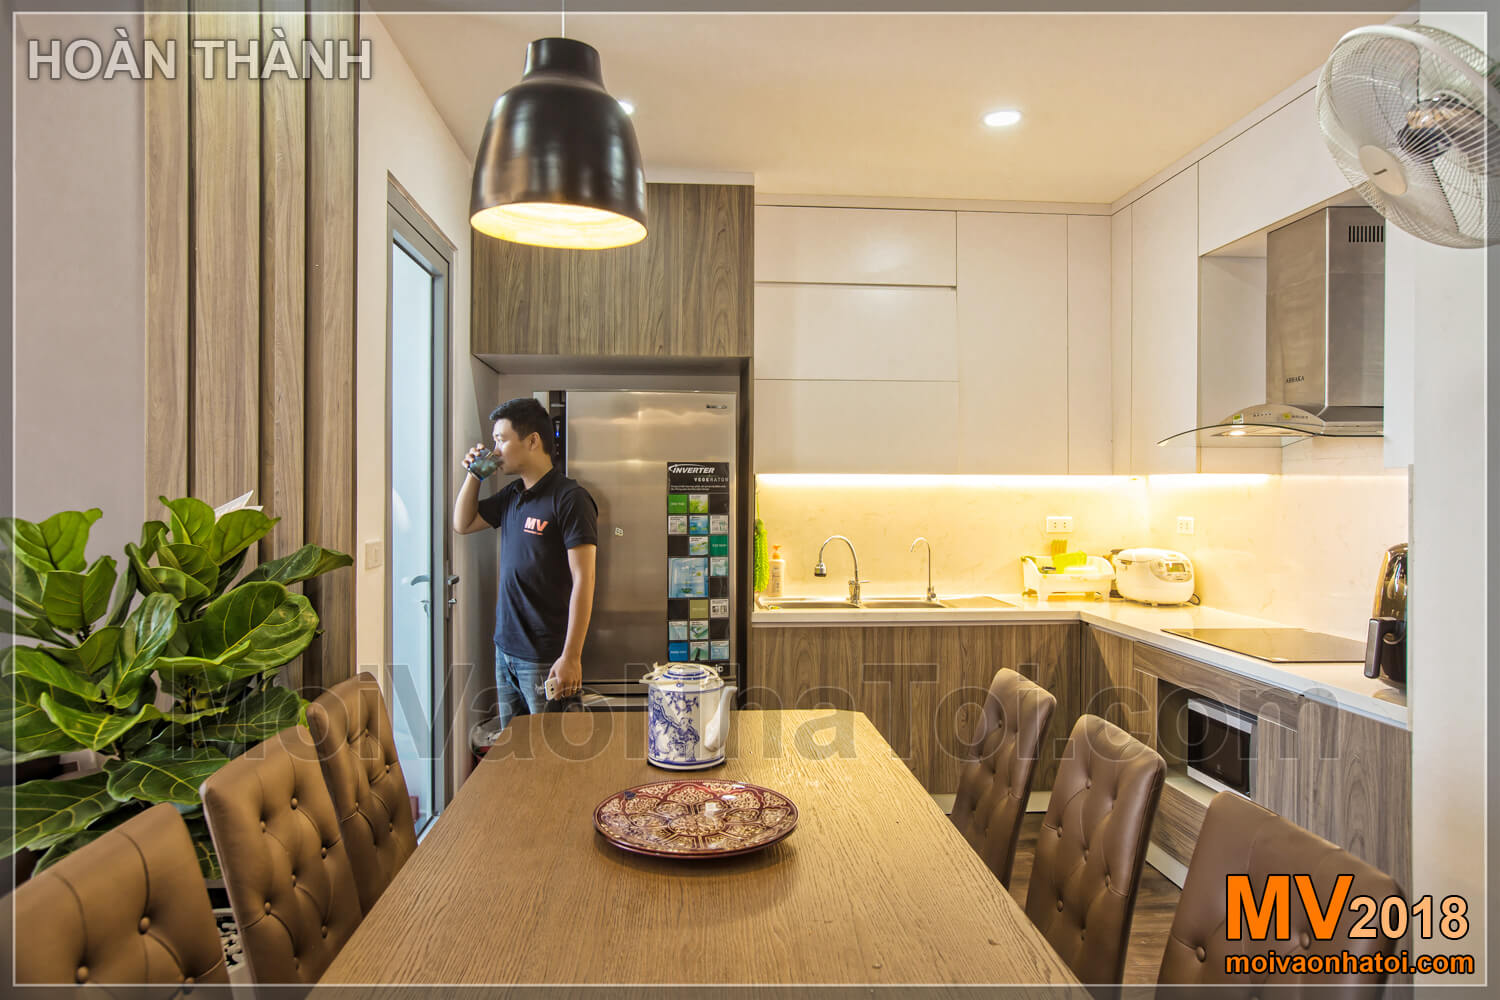 kitchen after construction of Vinhomes Gardenia apartment